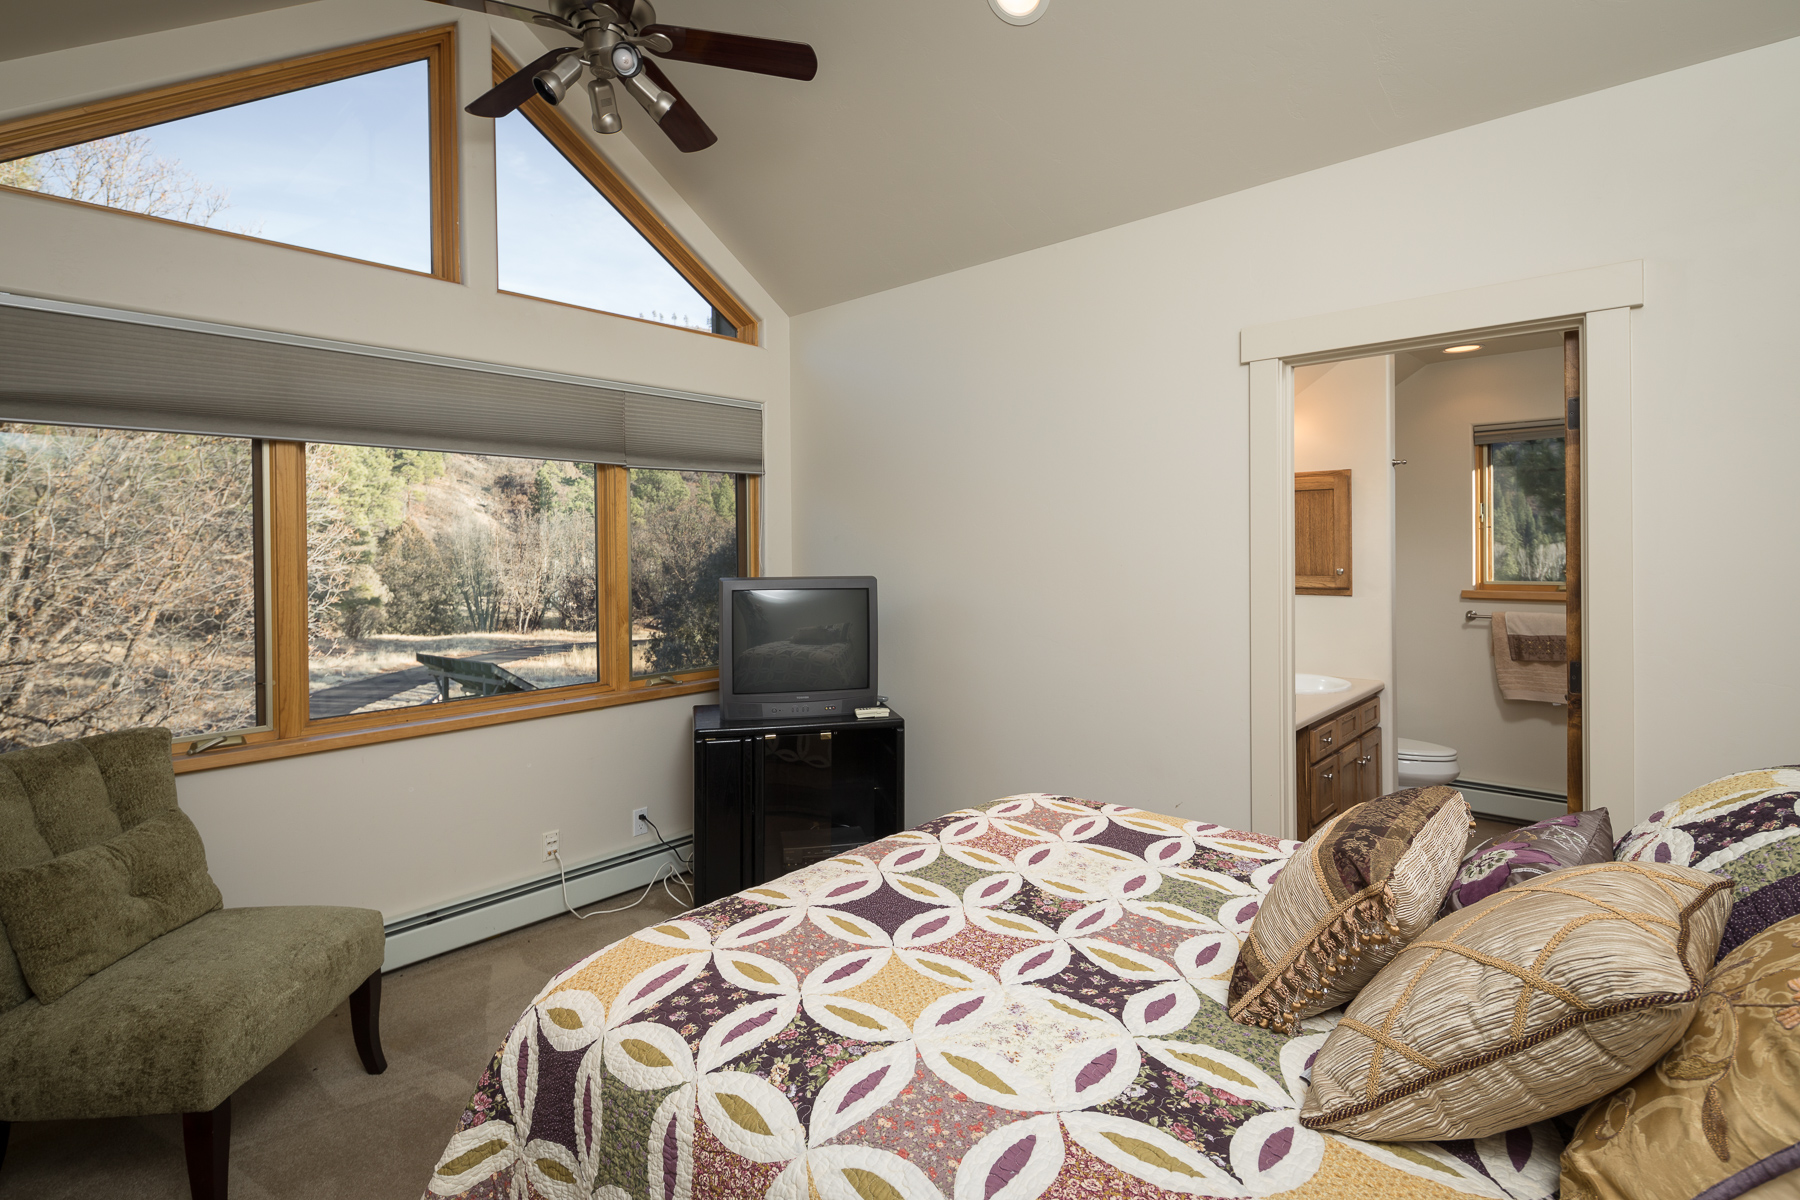 Additional photo for property listing at 957 Elkhorn Mountain 957 Elkhorn Mountain Road Durango, Colorado 81301 United States